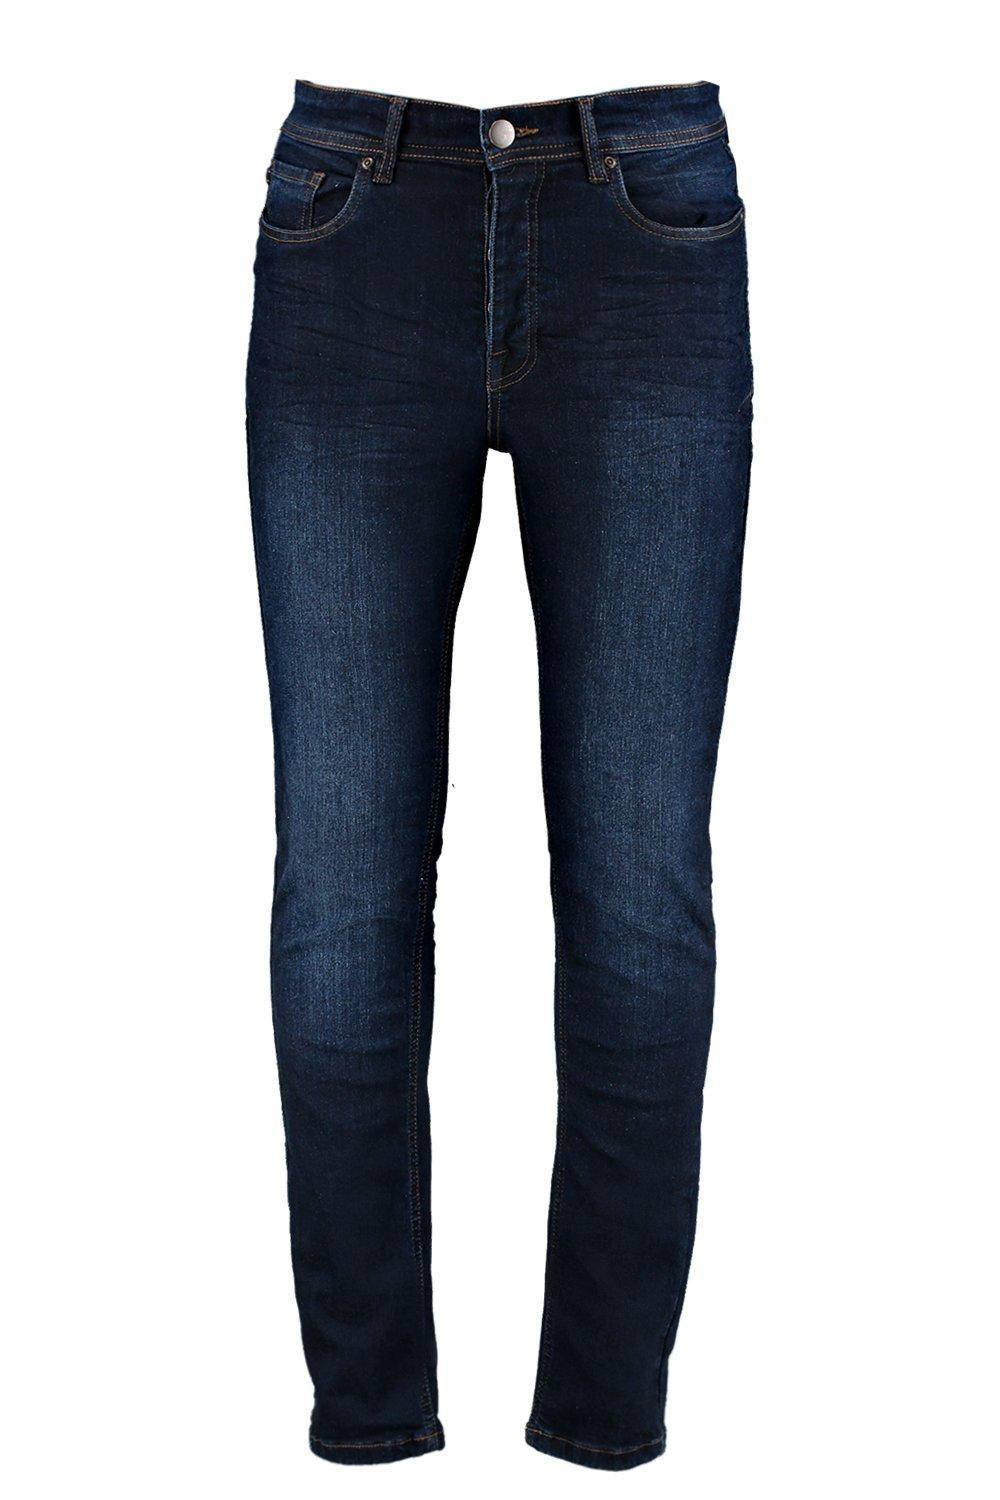 At bebe you'll find fabulous-fitting jeans for women. Browse an array of styles, including sexy skinny jeans, boyfriend styles, ripped jeans for women and more. Whatever your favorite denim look, shop bebe to find the perfect pair of jeans for you. Free shipping over $